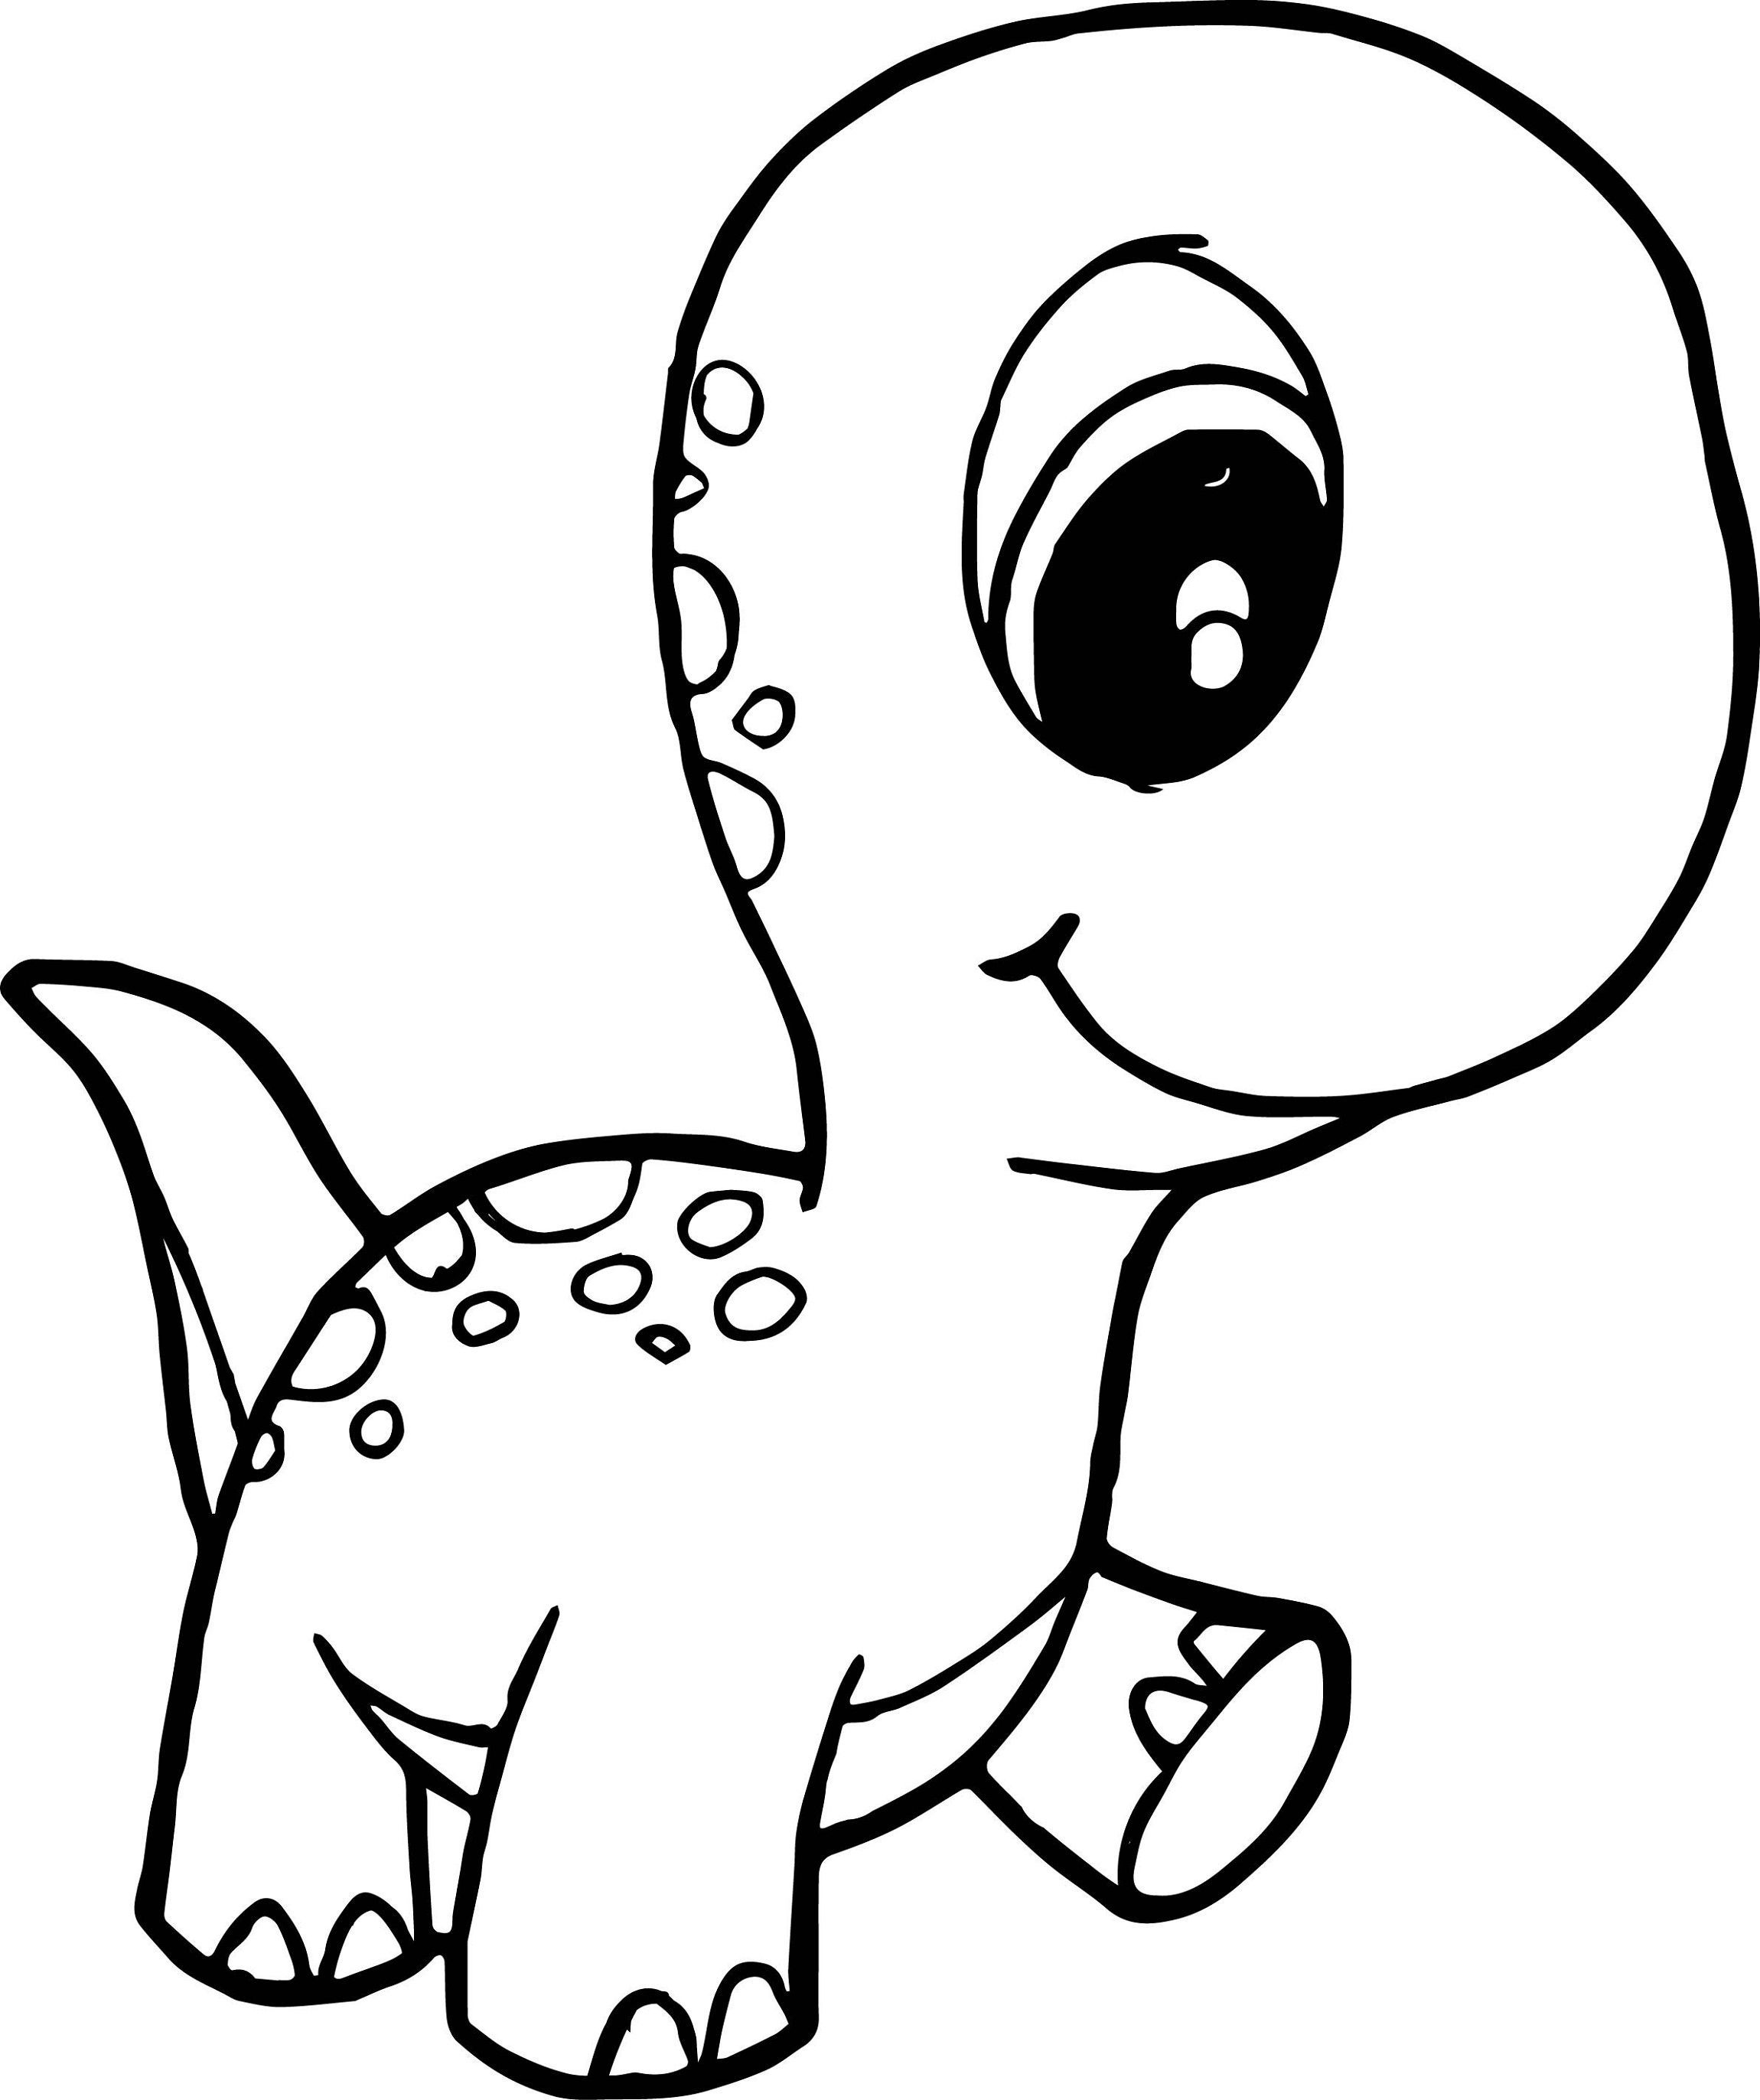 free printable coloring pages of dinosaurs lets coloring book prehistoric jurassic world dinosaurs pages dinosaurs printable free coloring of